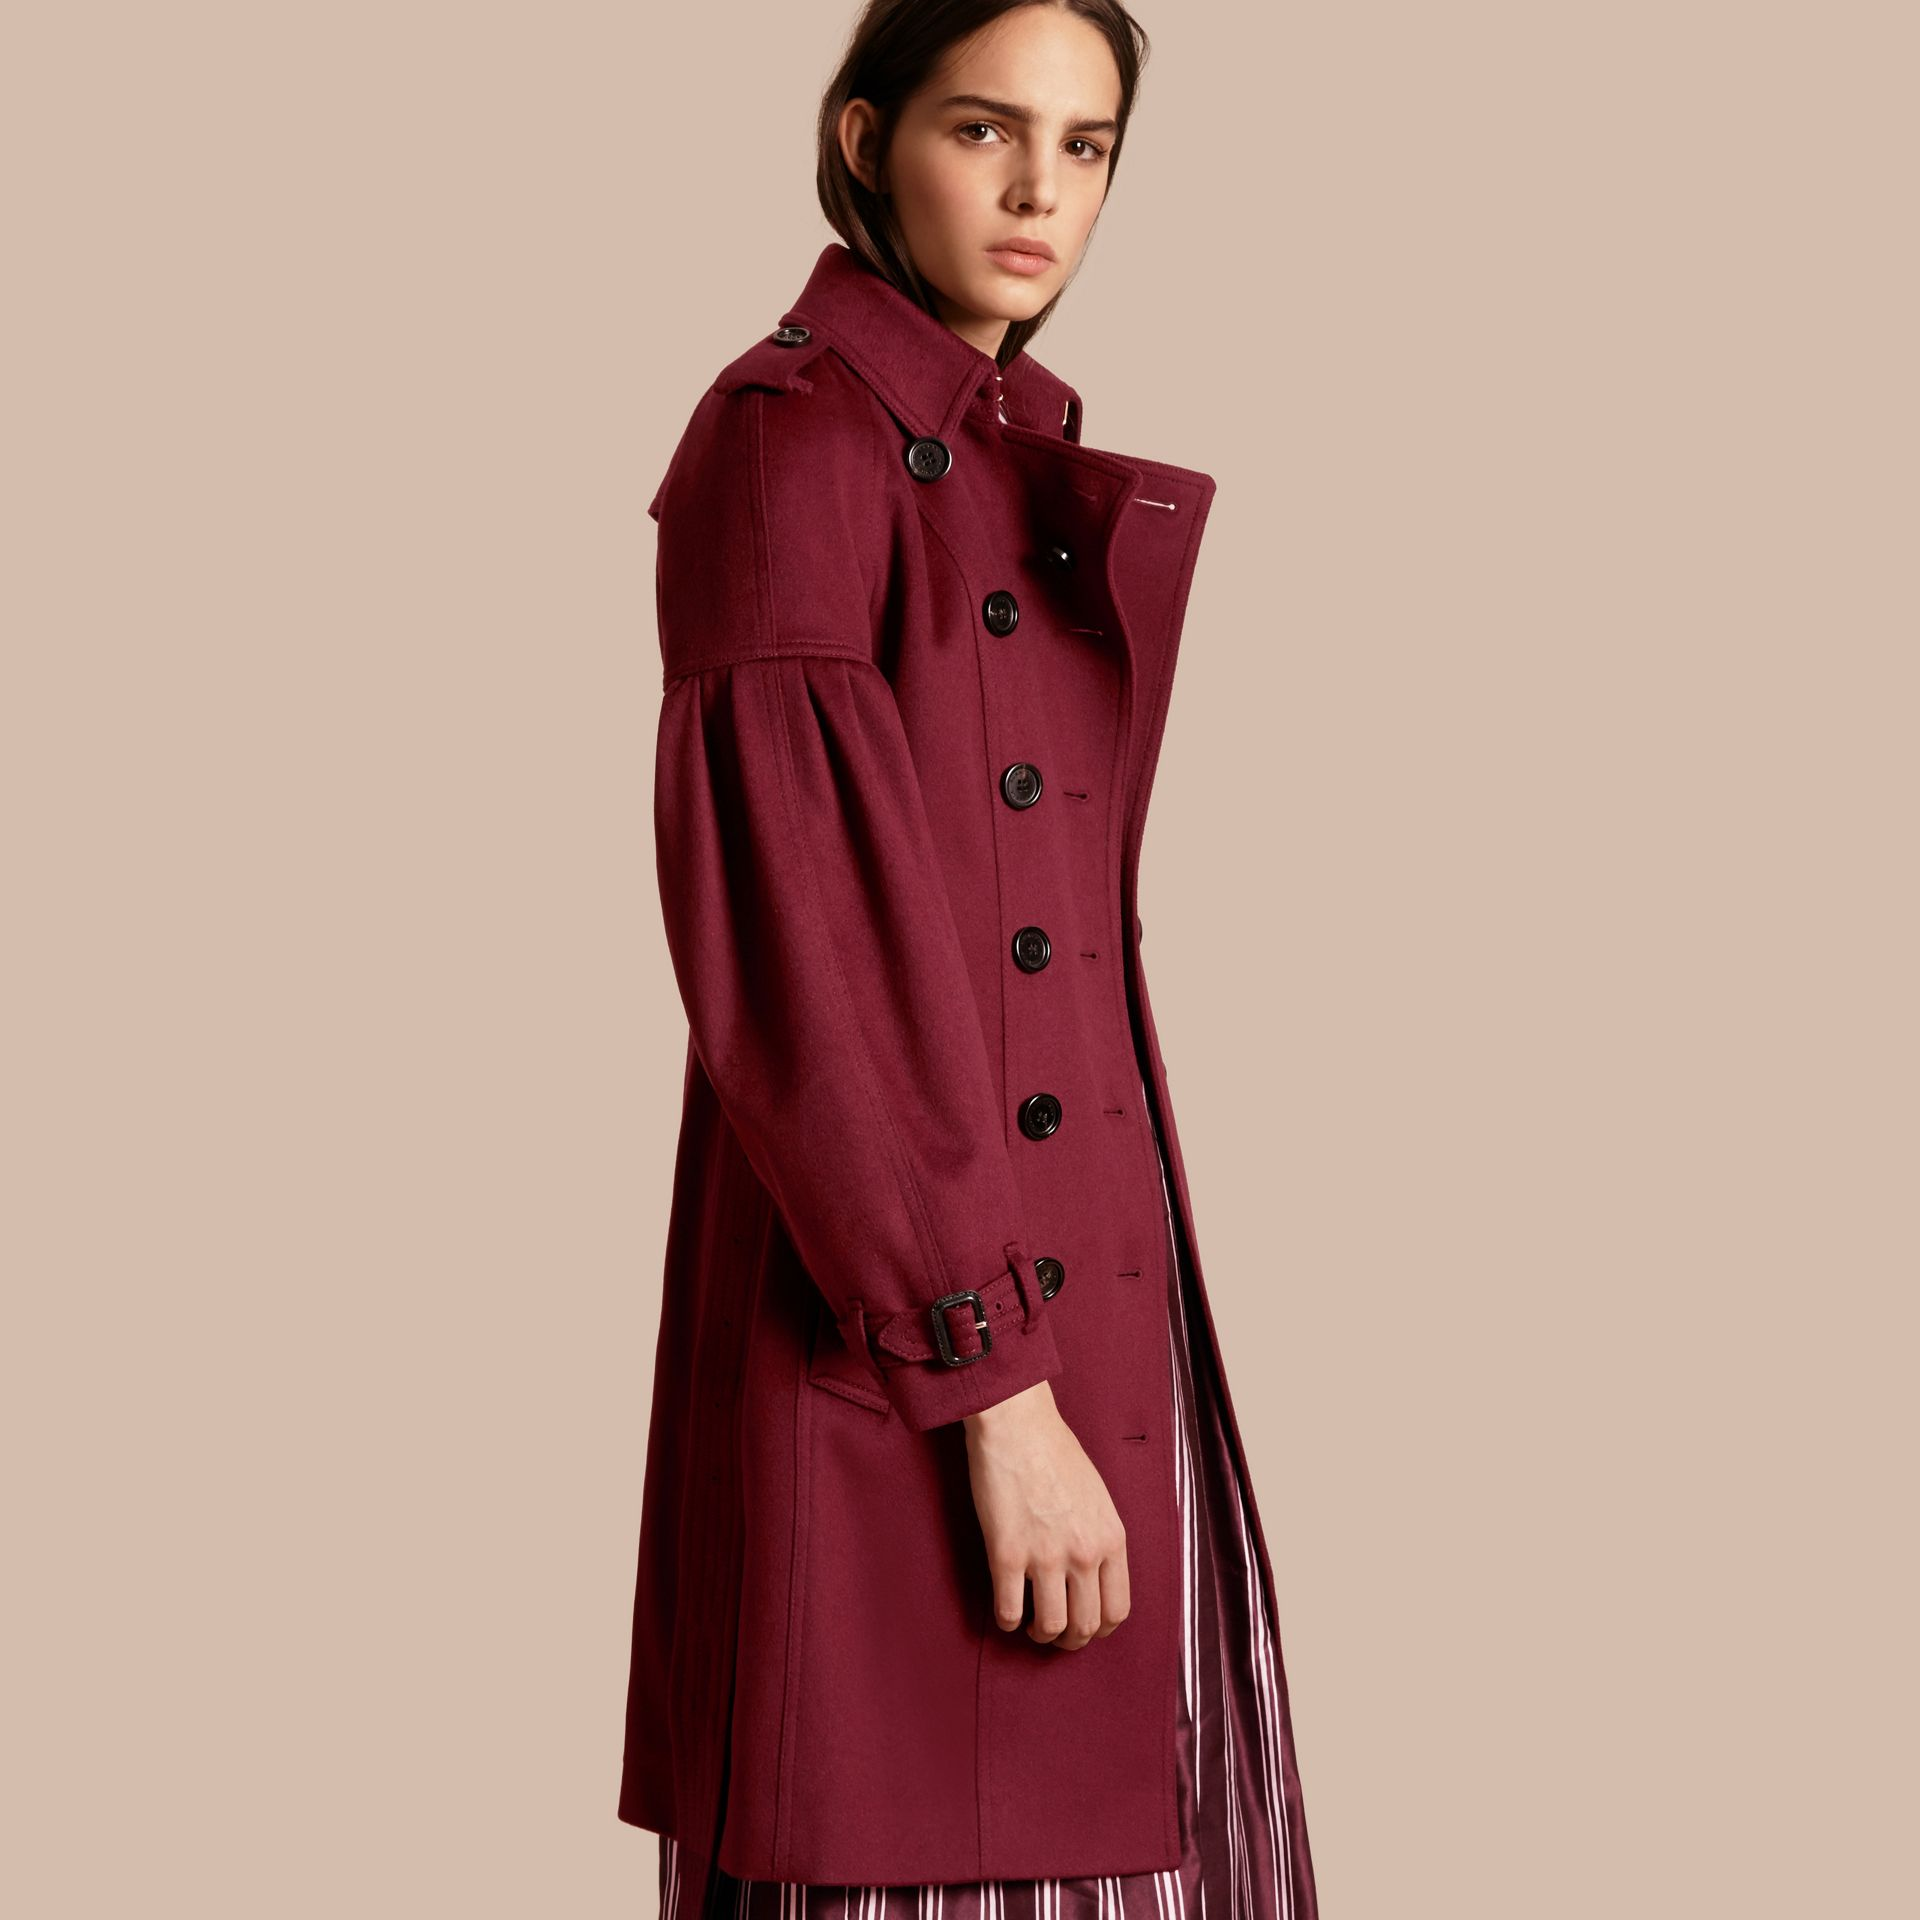 Burgundy Cashmere Trench Coat with Puff Sleeves Burgundy - gallery image 1